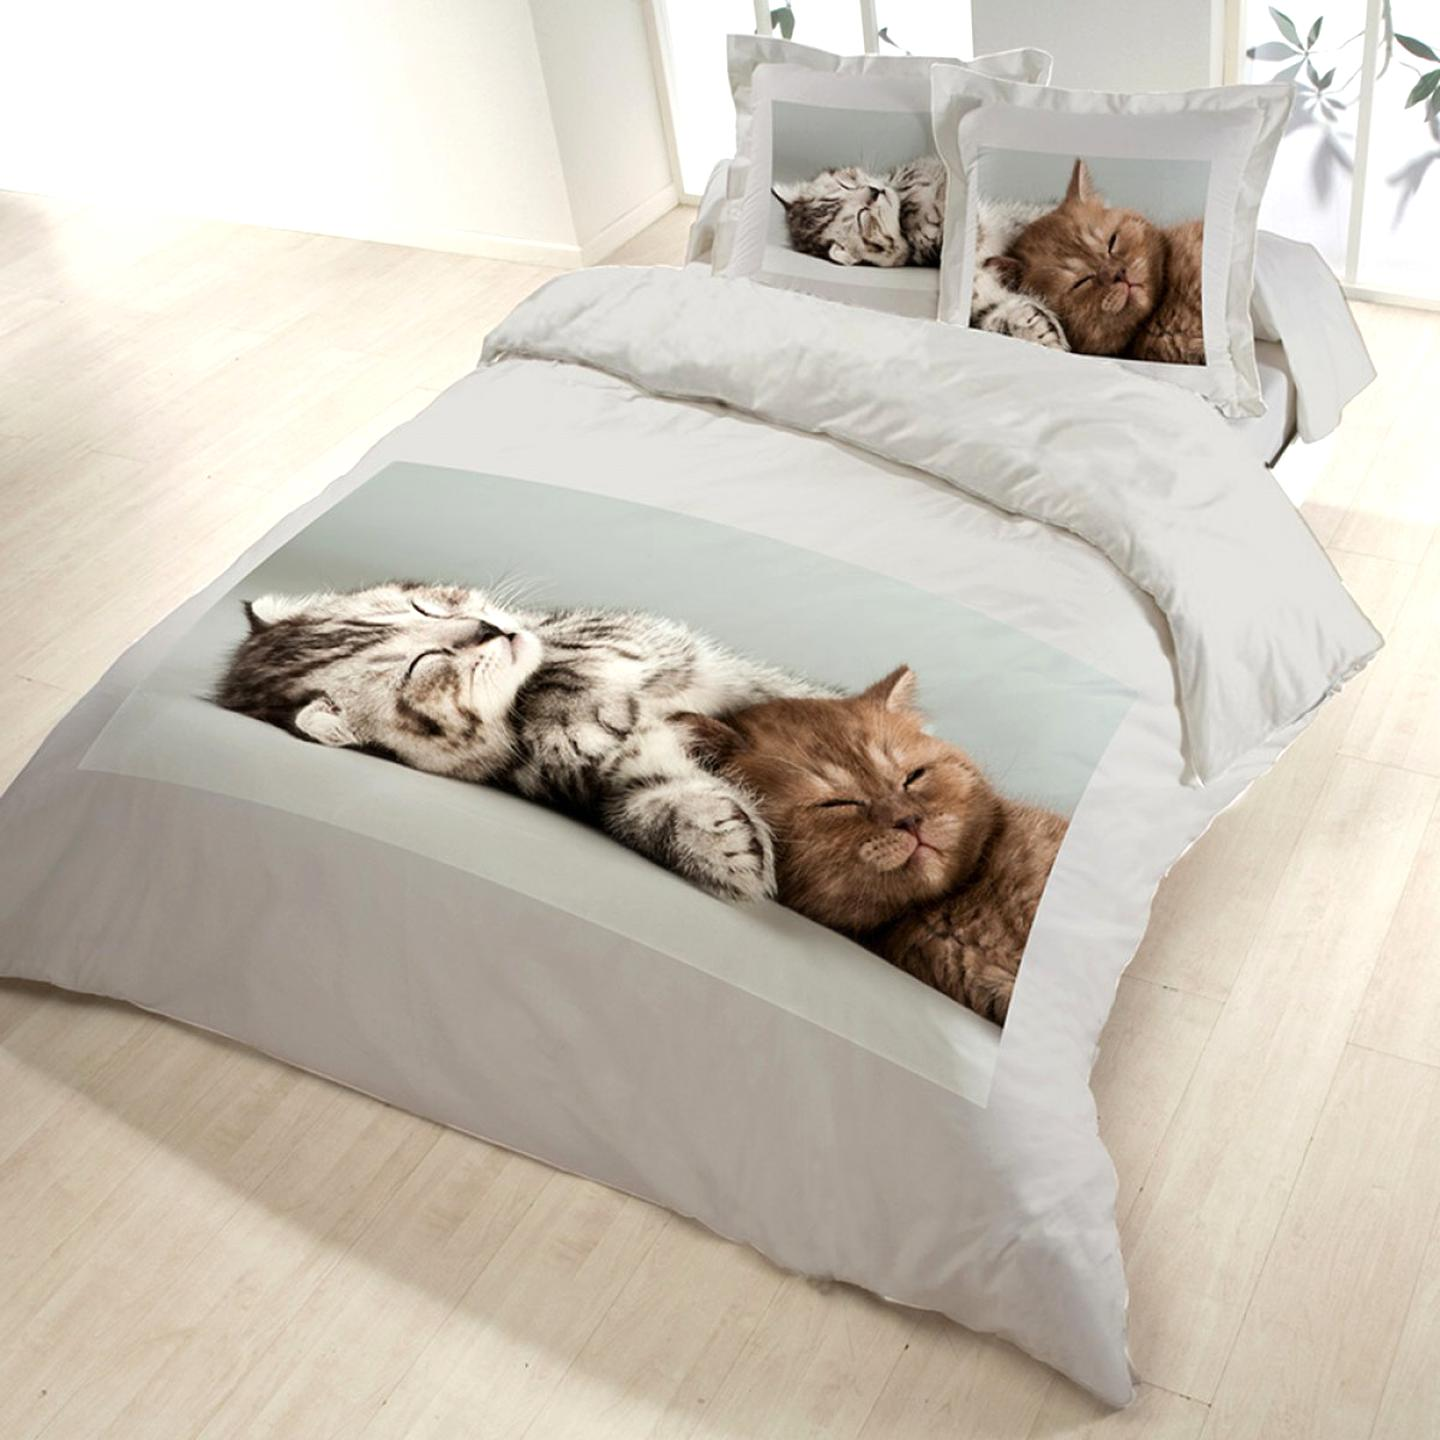 housse couette chat d occasion